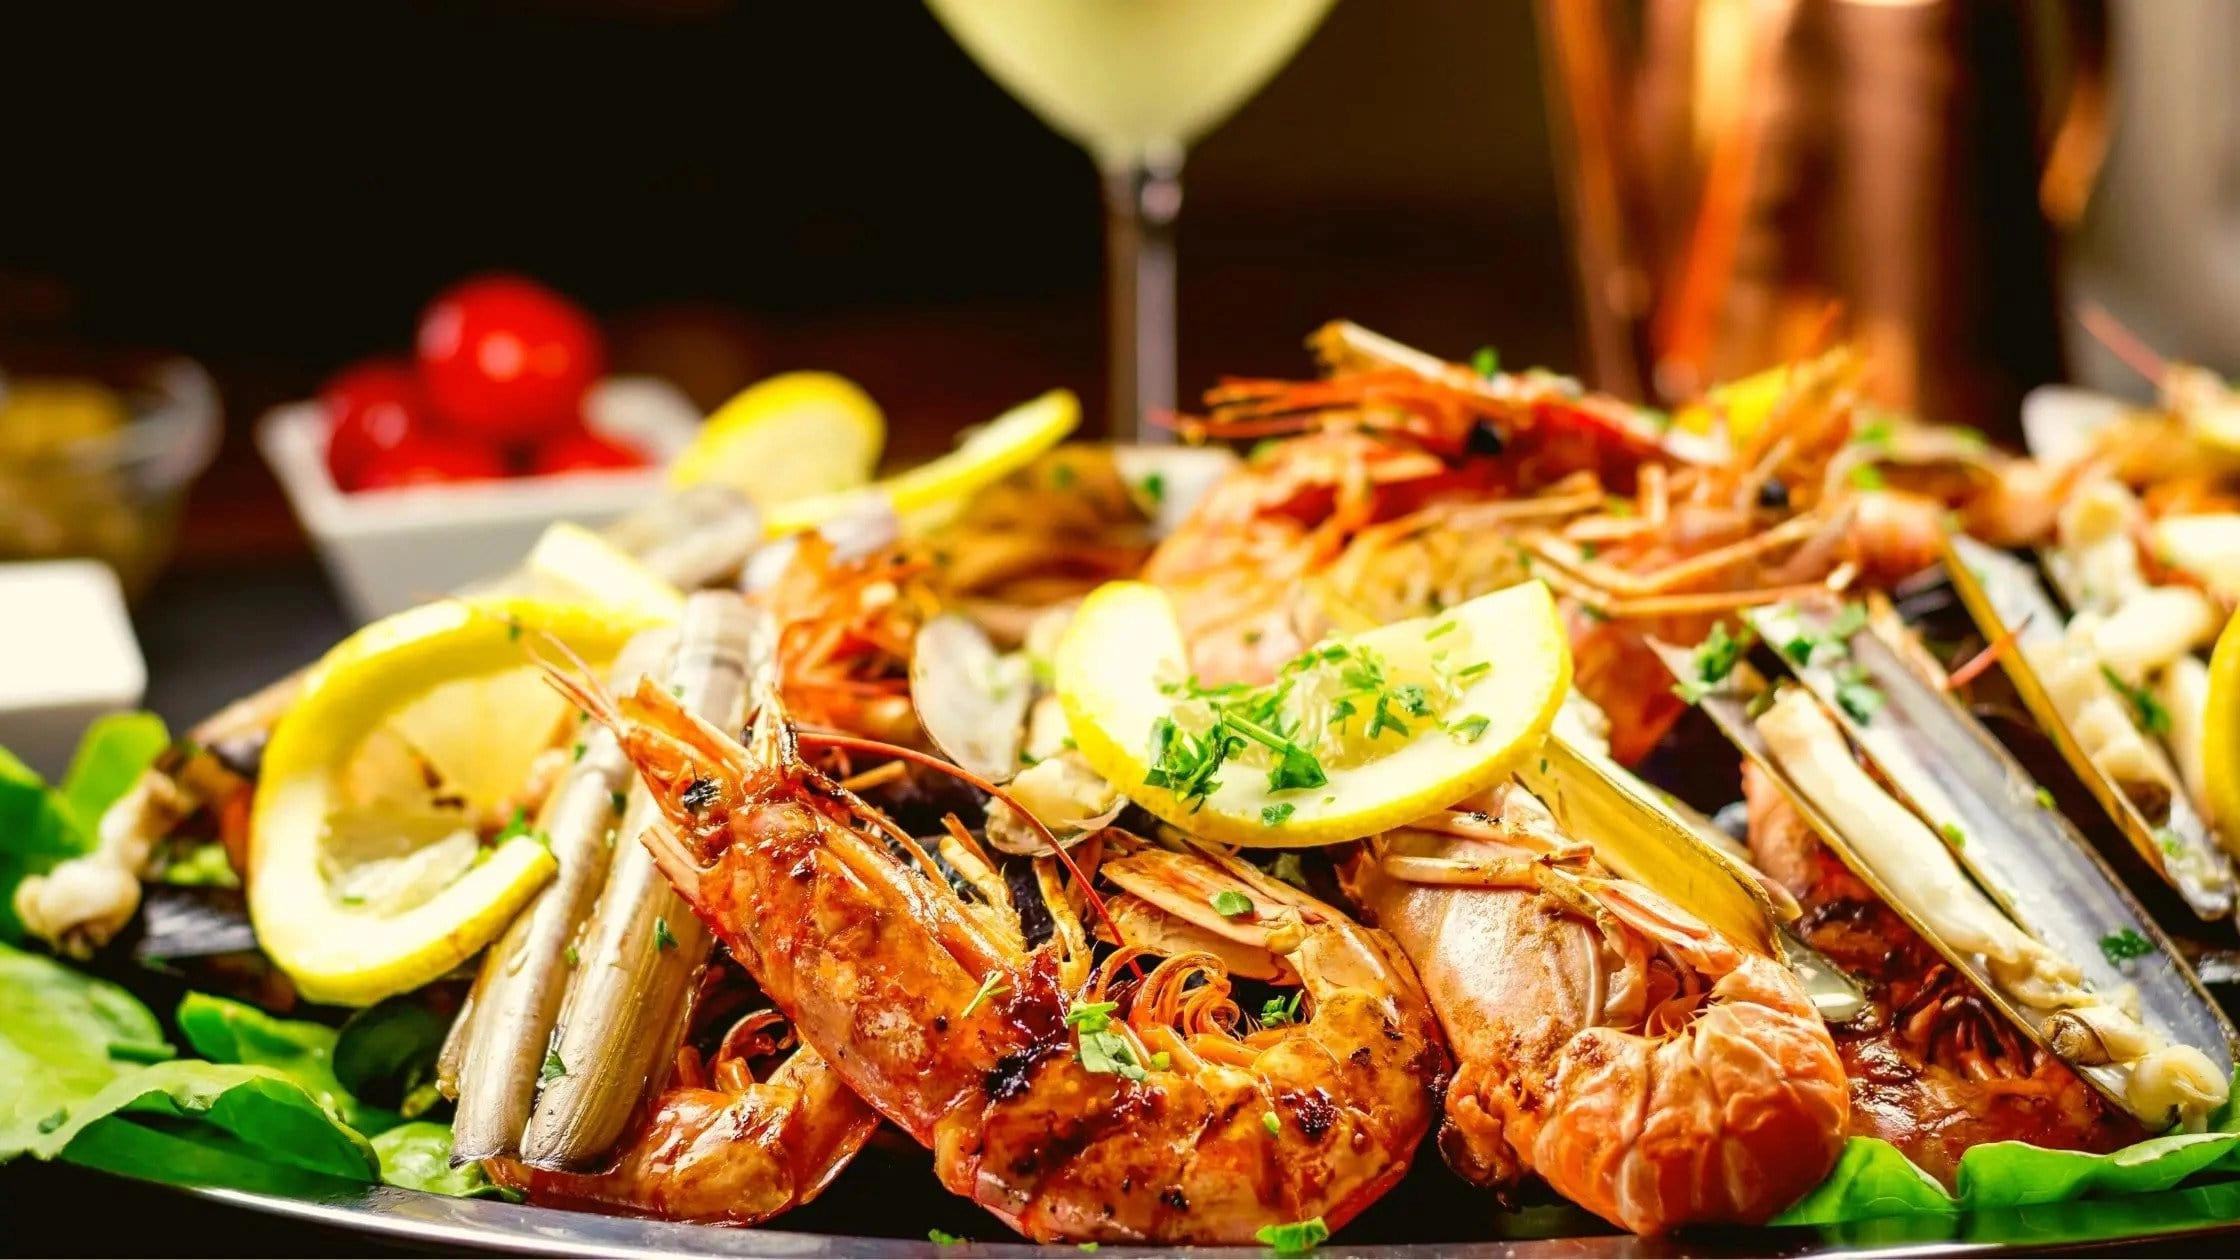 8 of Finger licking Seafood dishes to try in Hong Kong